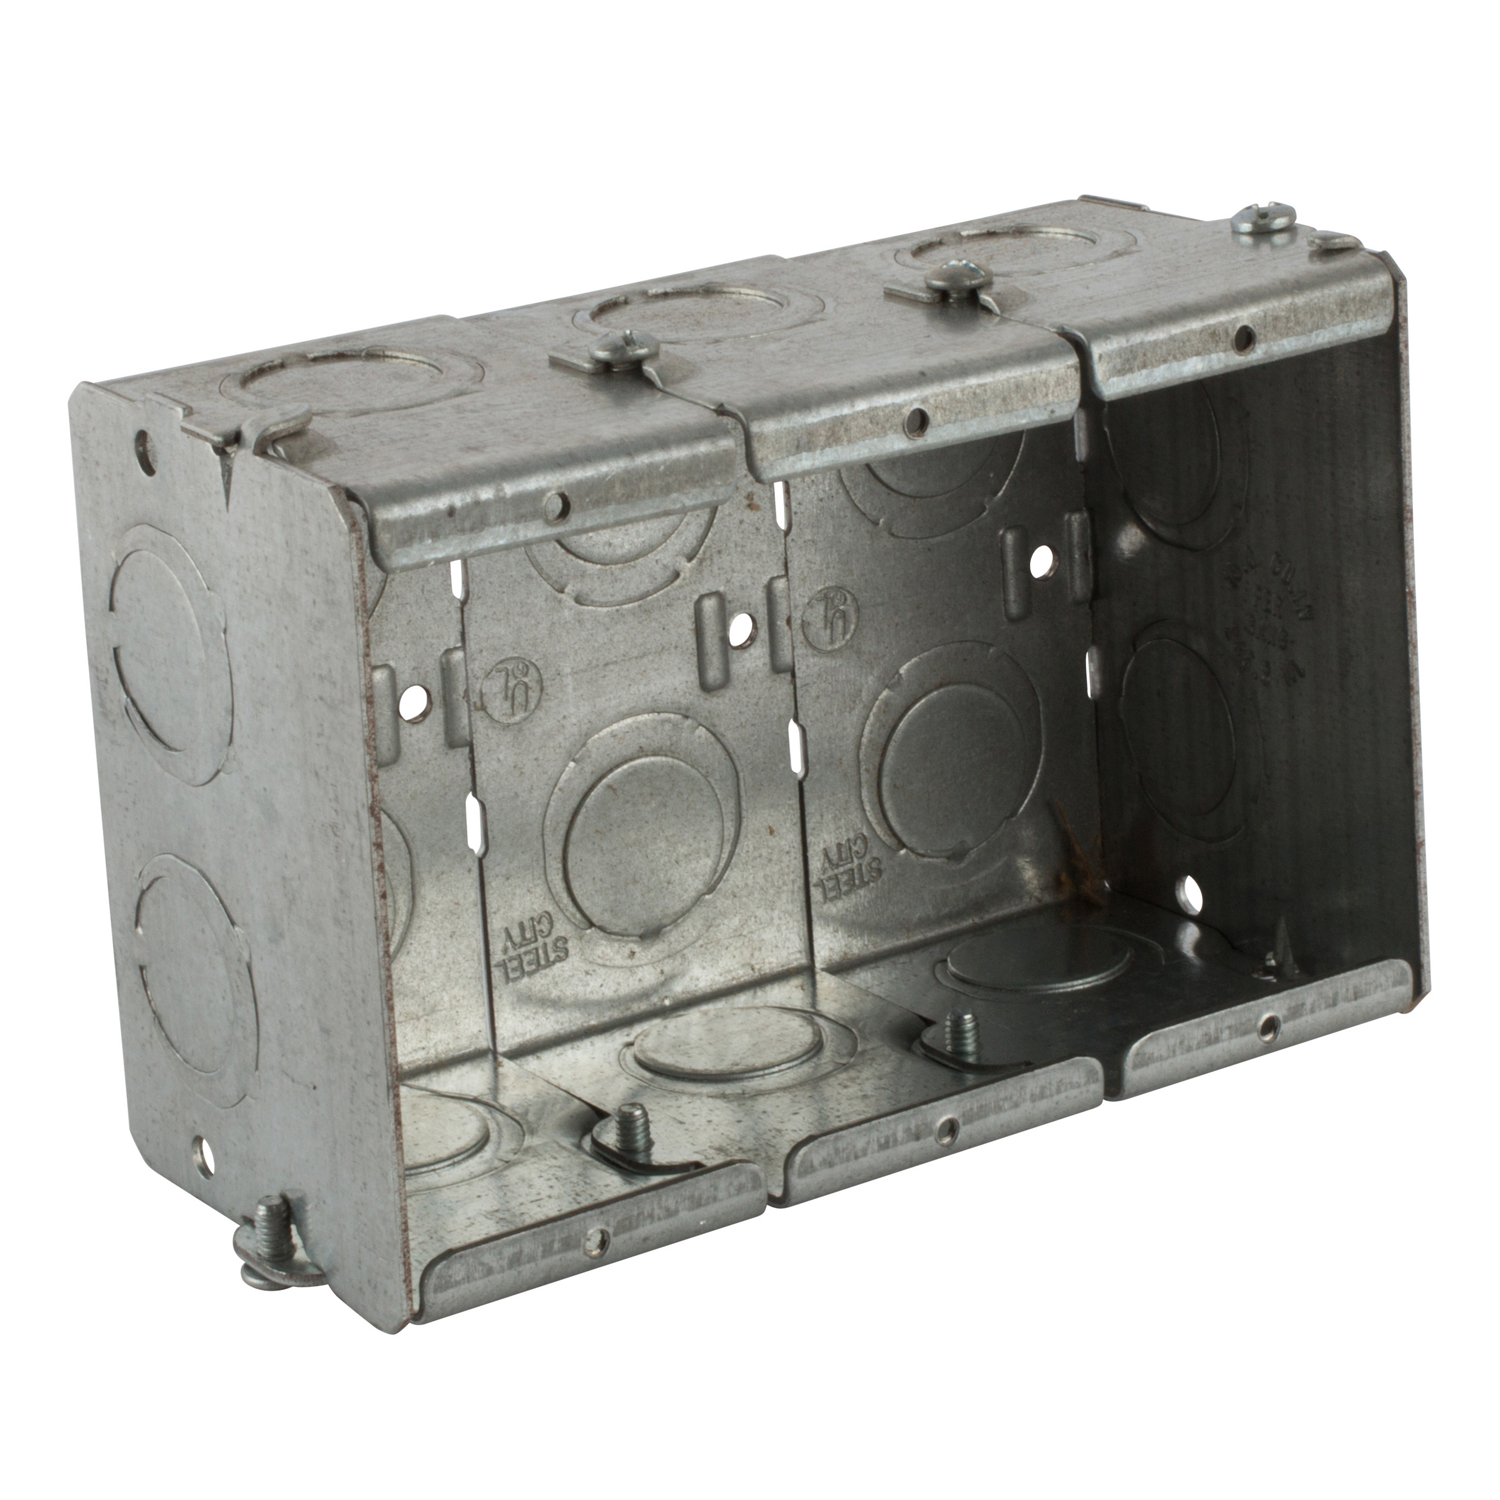 Steel City Masonry Box, Gangable, Series: GW, 3 Gangs, 14 Knockouts, 1/2 and 3/4 in Knockout, Knockouts Cable Entry, Threaded Mount, 47.4 cu-in, Steel, Electro Galvanized, 3-3/4 in L x 5-9/16 in W x 2-1/2 in D